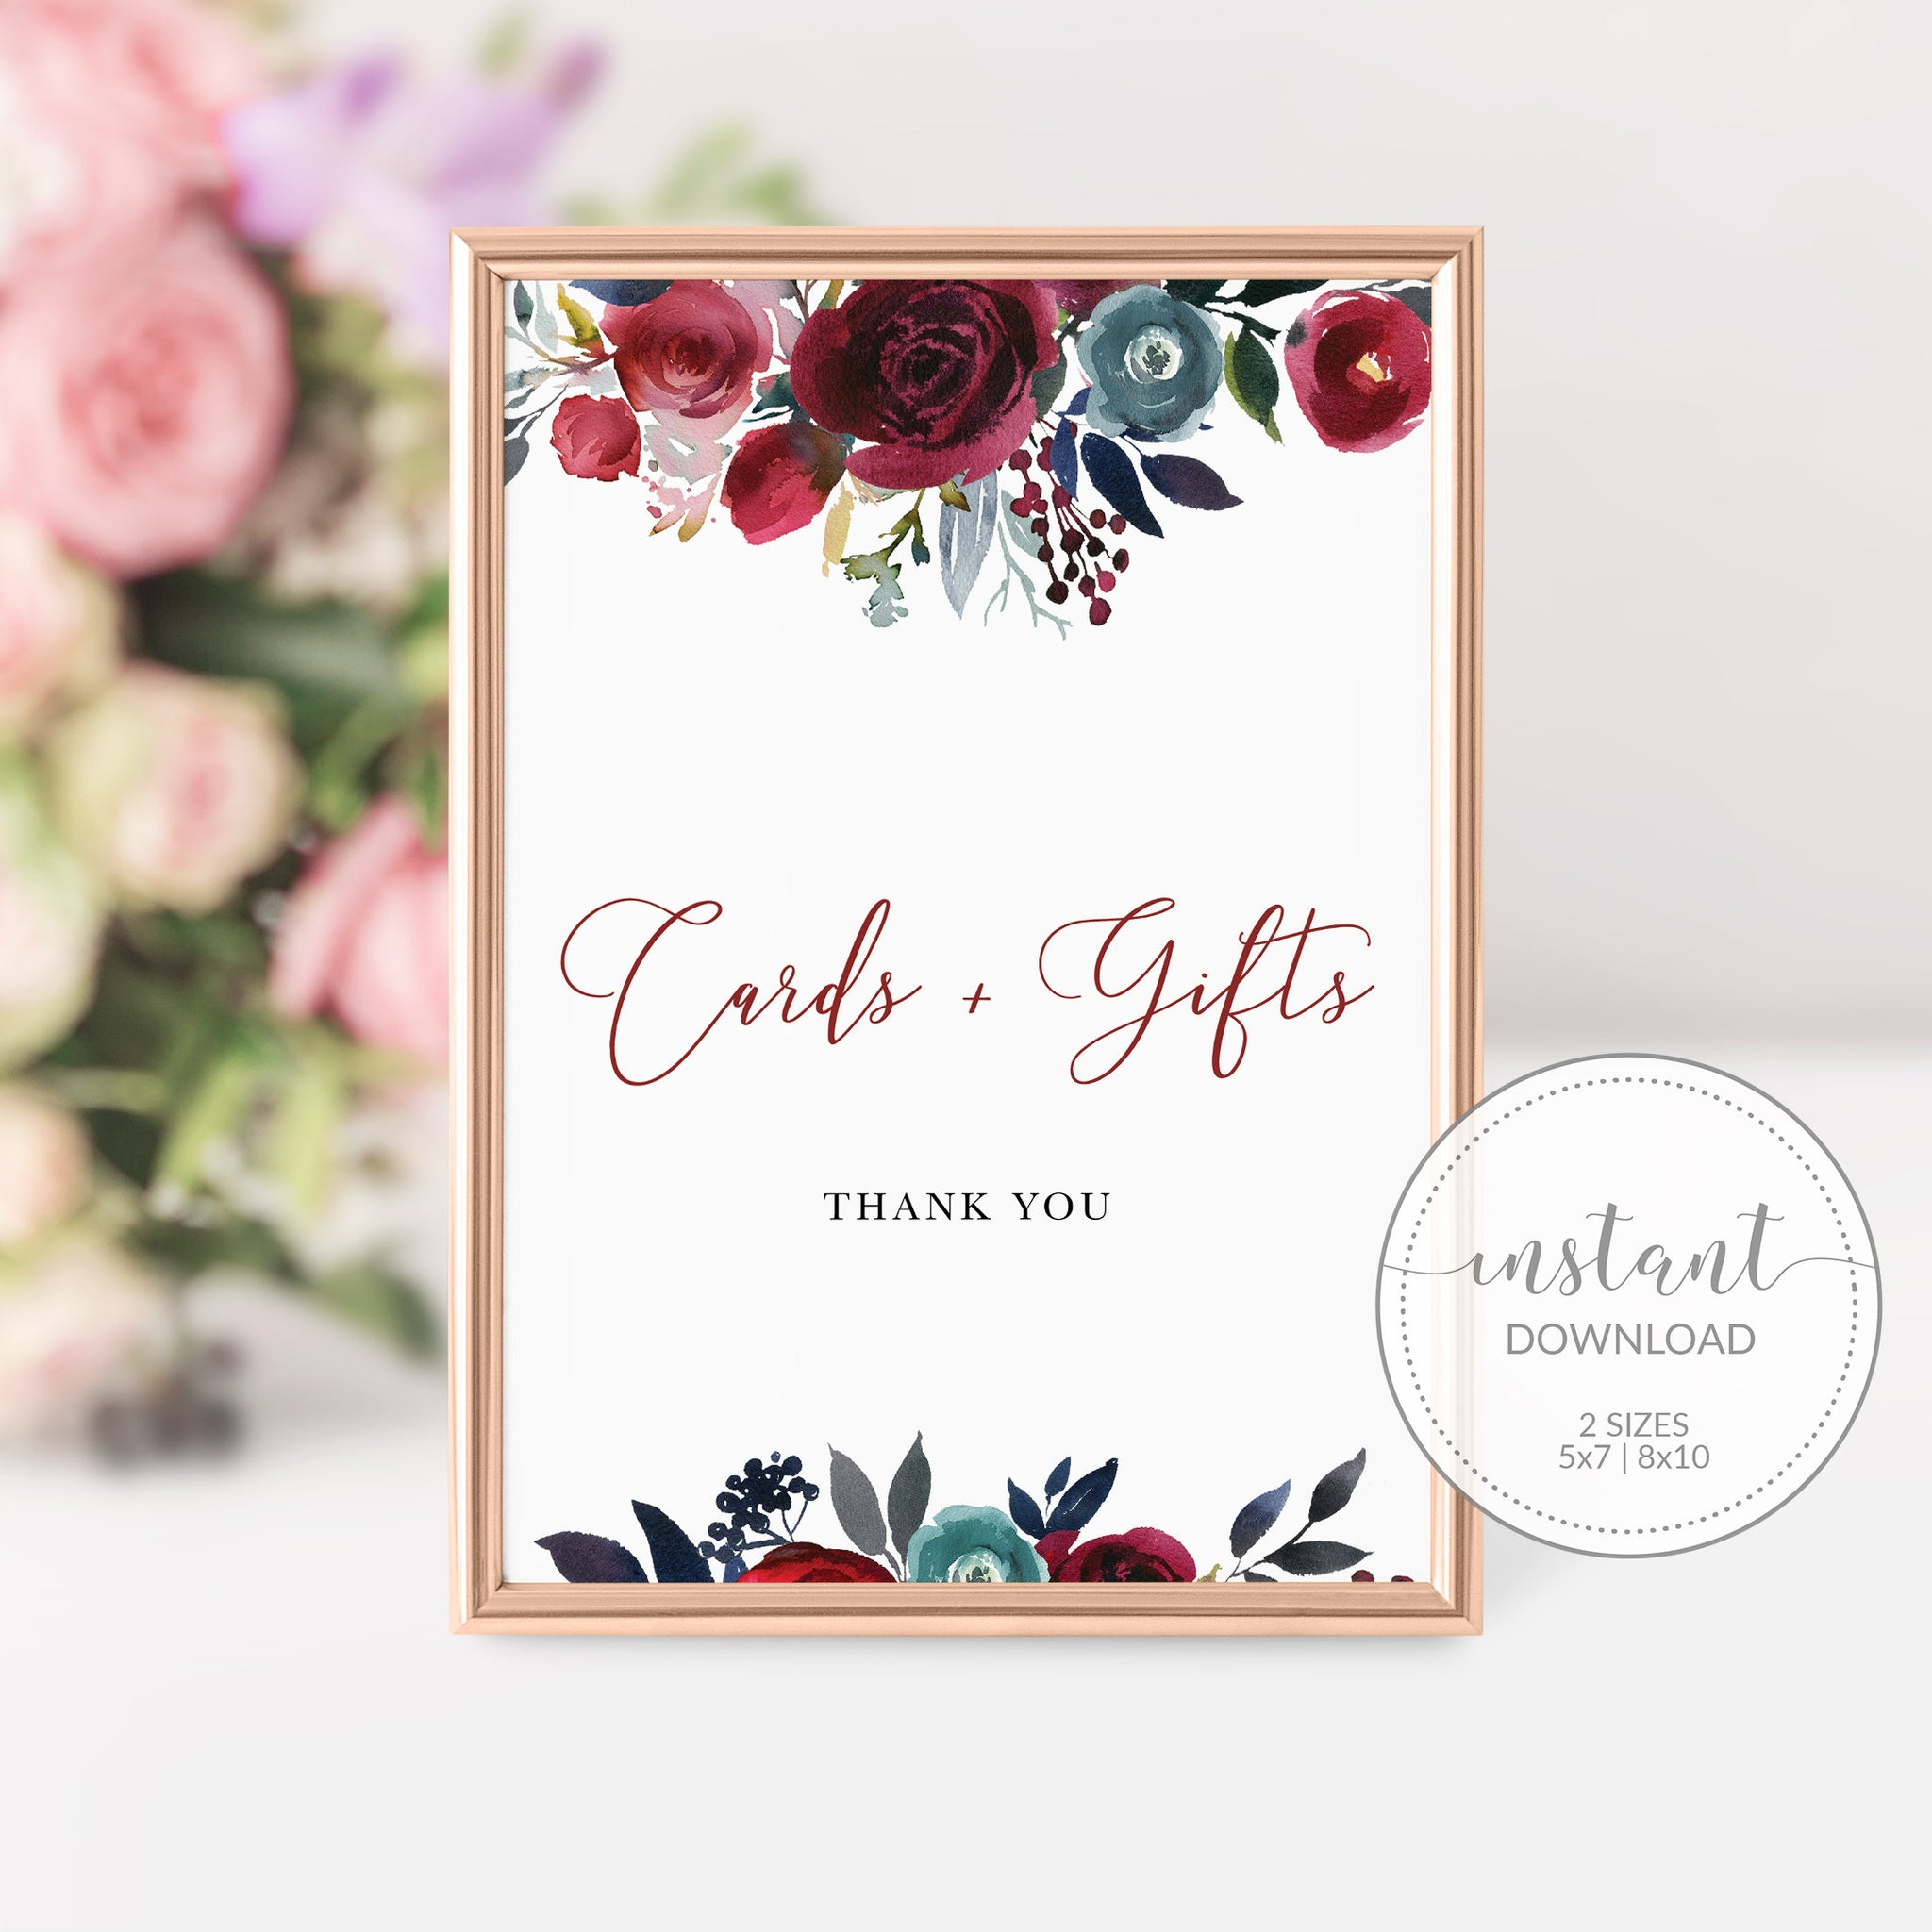 Burgundy Wedding Decor, Cards and Gifts Sign Printable, Burgundy and Navy Wedding, INSTANT DOWNLOAD - BB100 - @PlumPolkaDot